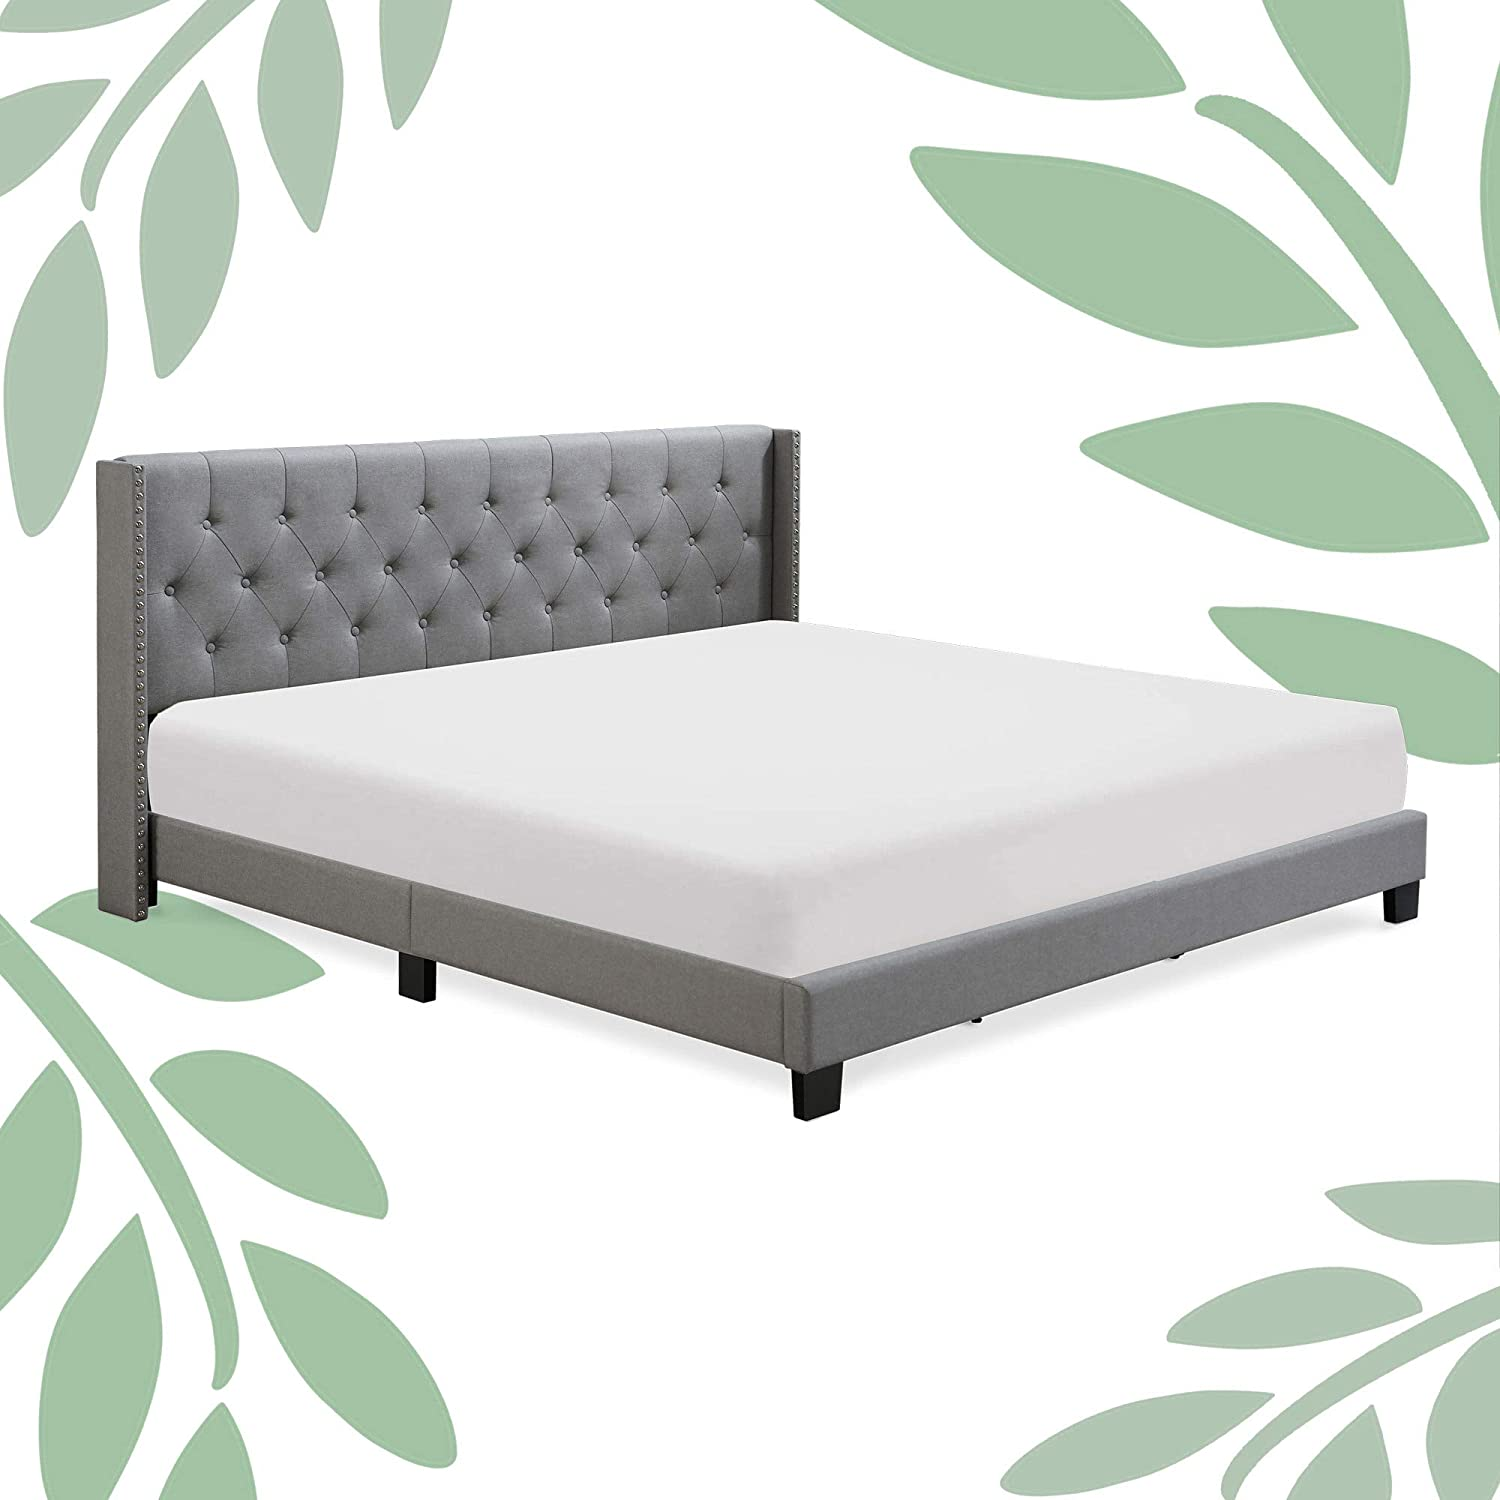 Queen King Full Upholstered Bed Frame With Wood Slat Platform Headboard Mattress